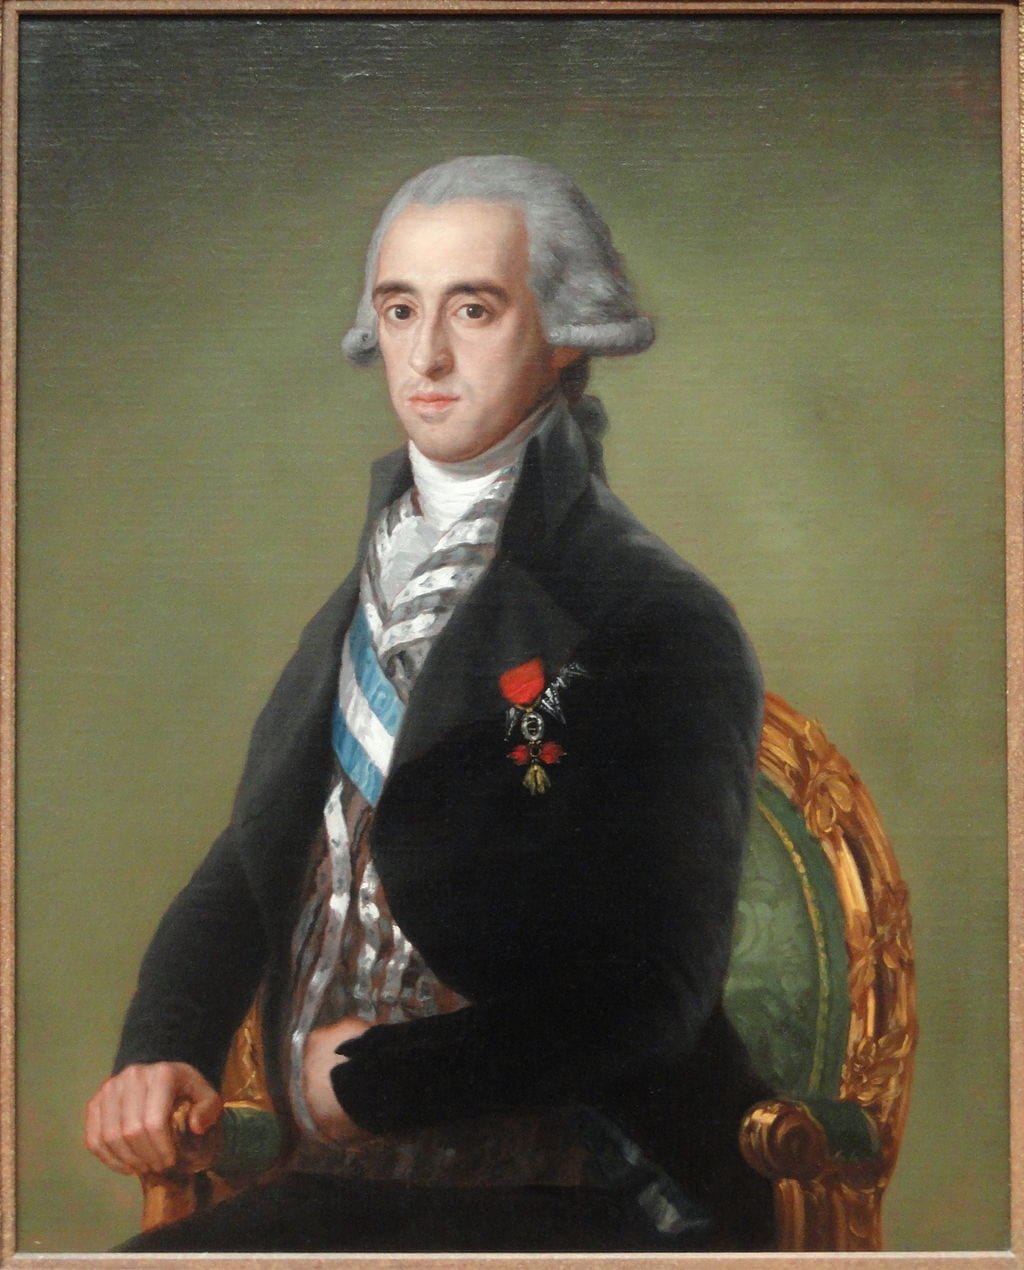 Francisco de Goya y Lucientes (Spanish, 1746 - 1828), Portrait of José Alvarez de Toledo, Duke of Alba, c. 1795, Wikimedia Commons